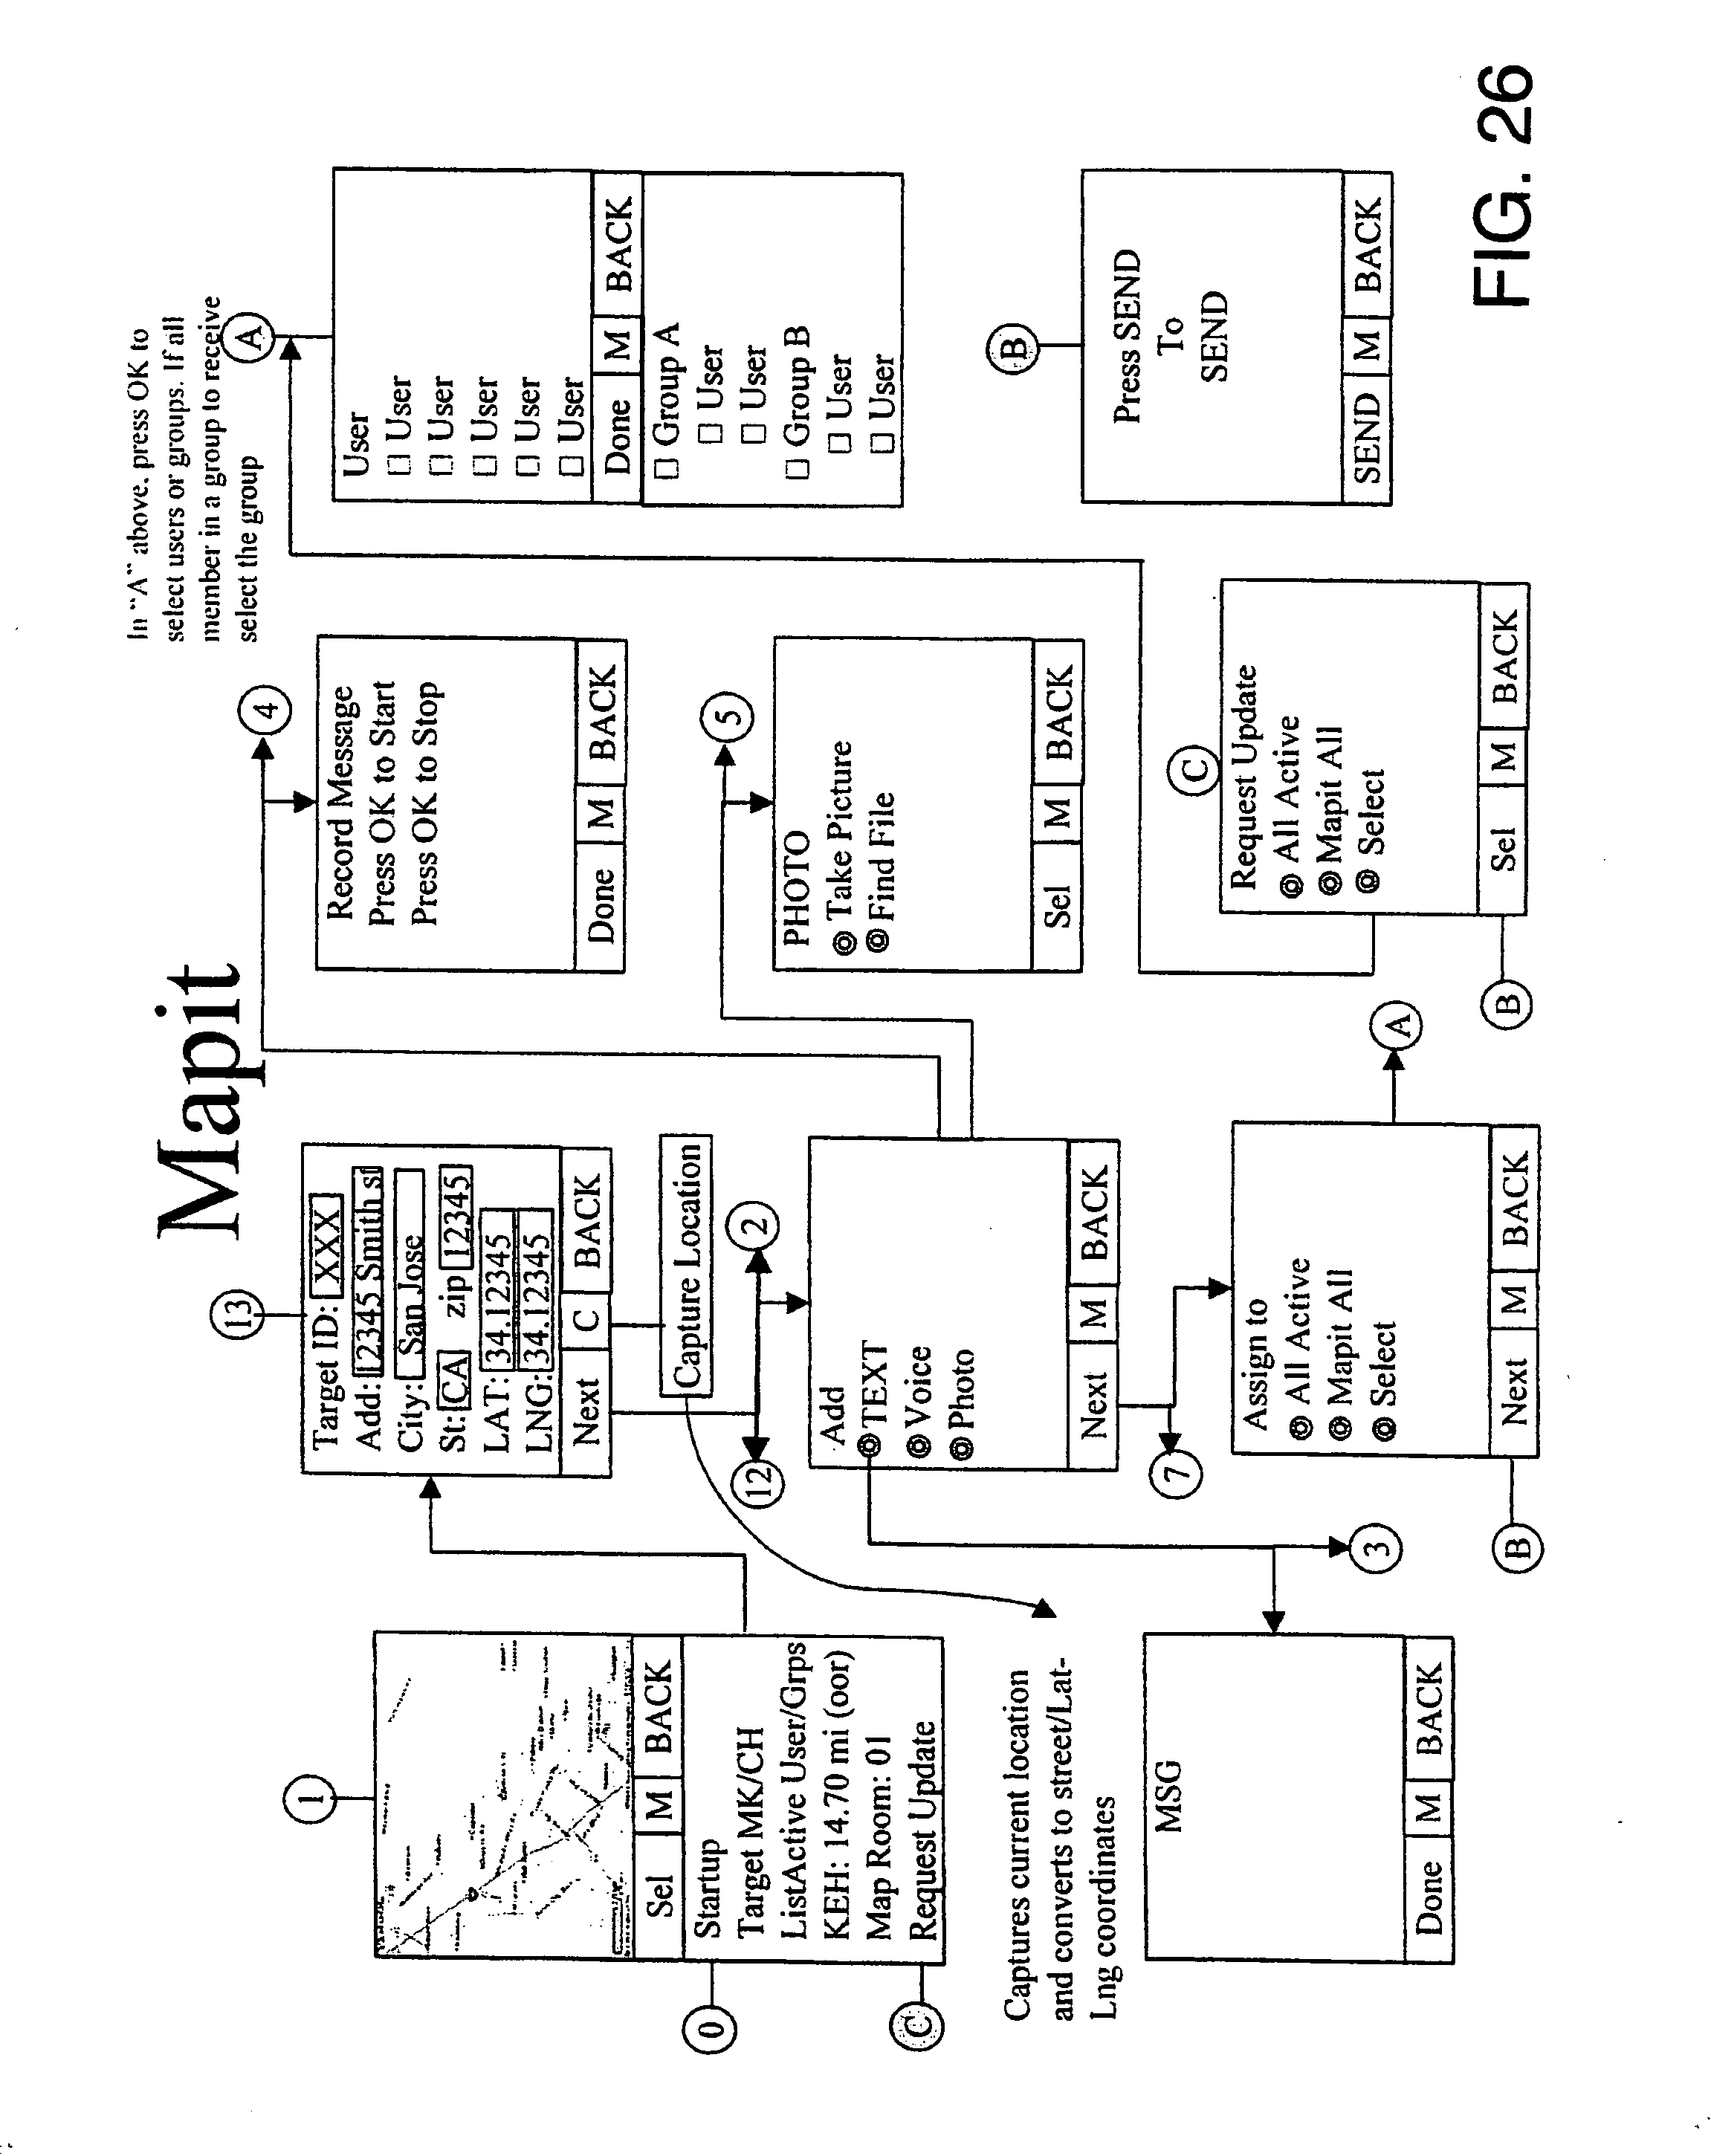 Us20060223518a1 location sharing and tracking using mobile phones us20060223518a1 location sharing and tracking using mobile phones or other wireless devices google patents fandeluxe Gallery